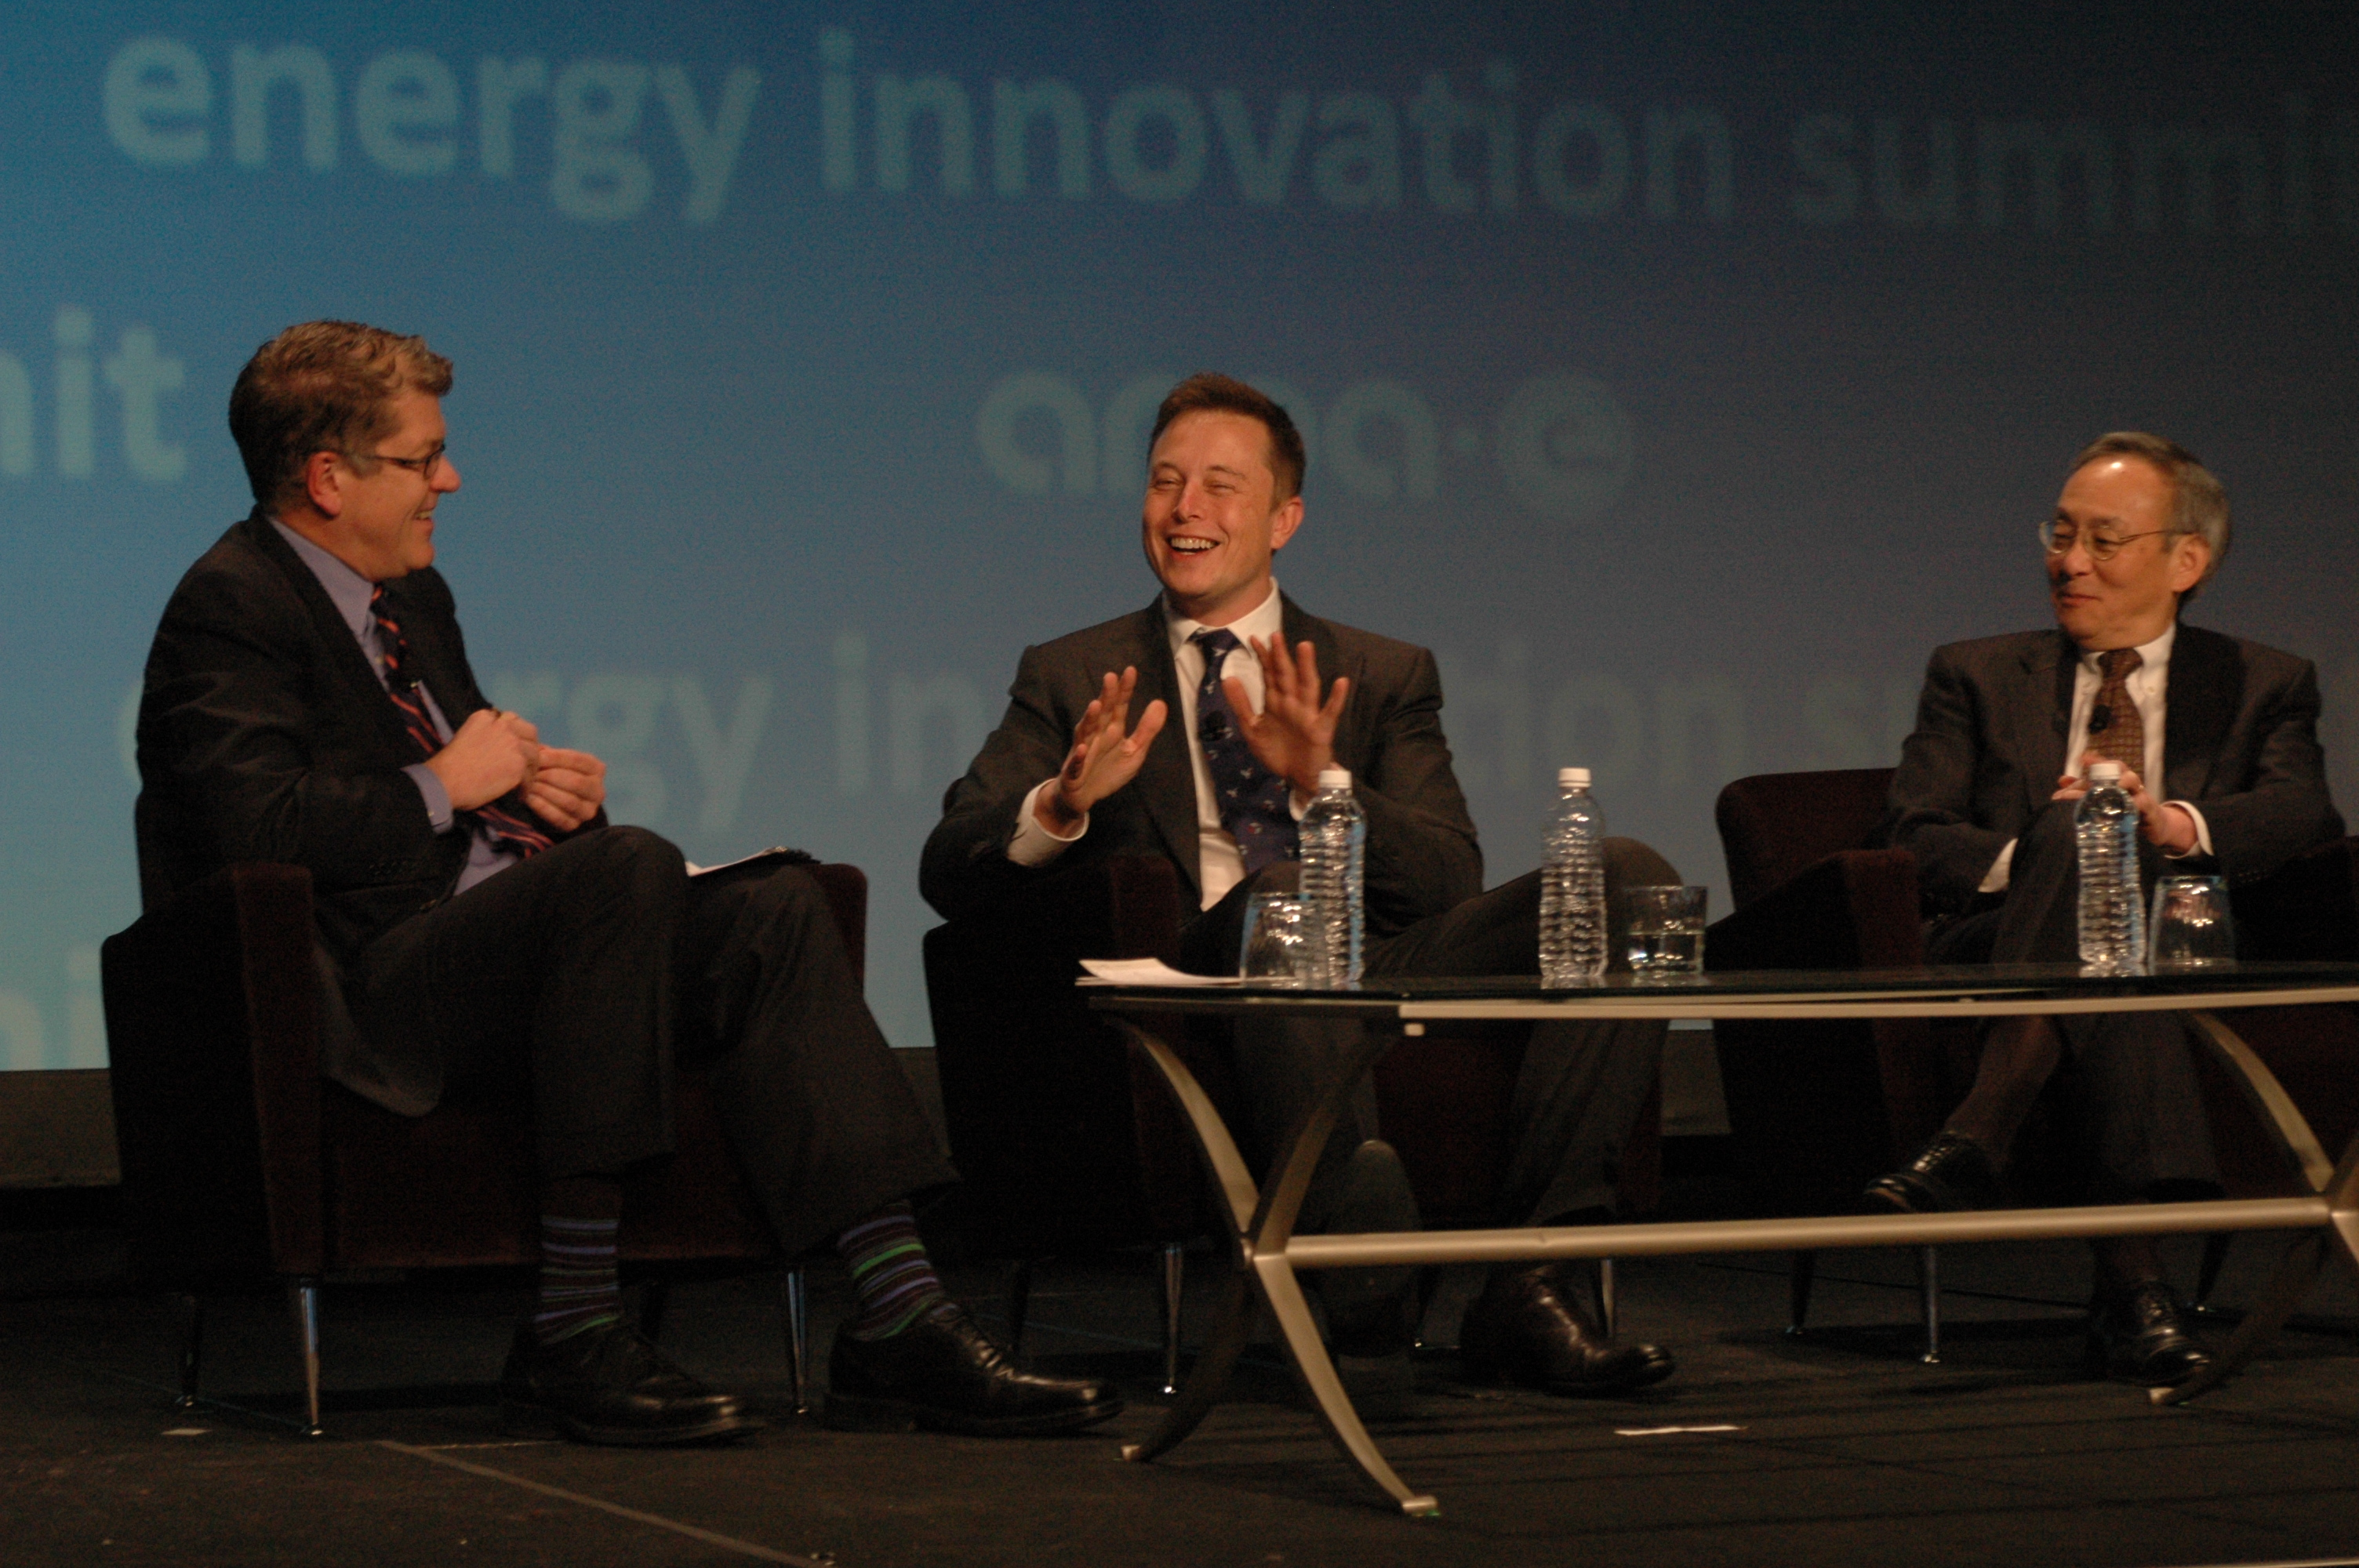 Elon Musk and Steven Chu at the 2013 ARPA-E Summit.